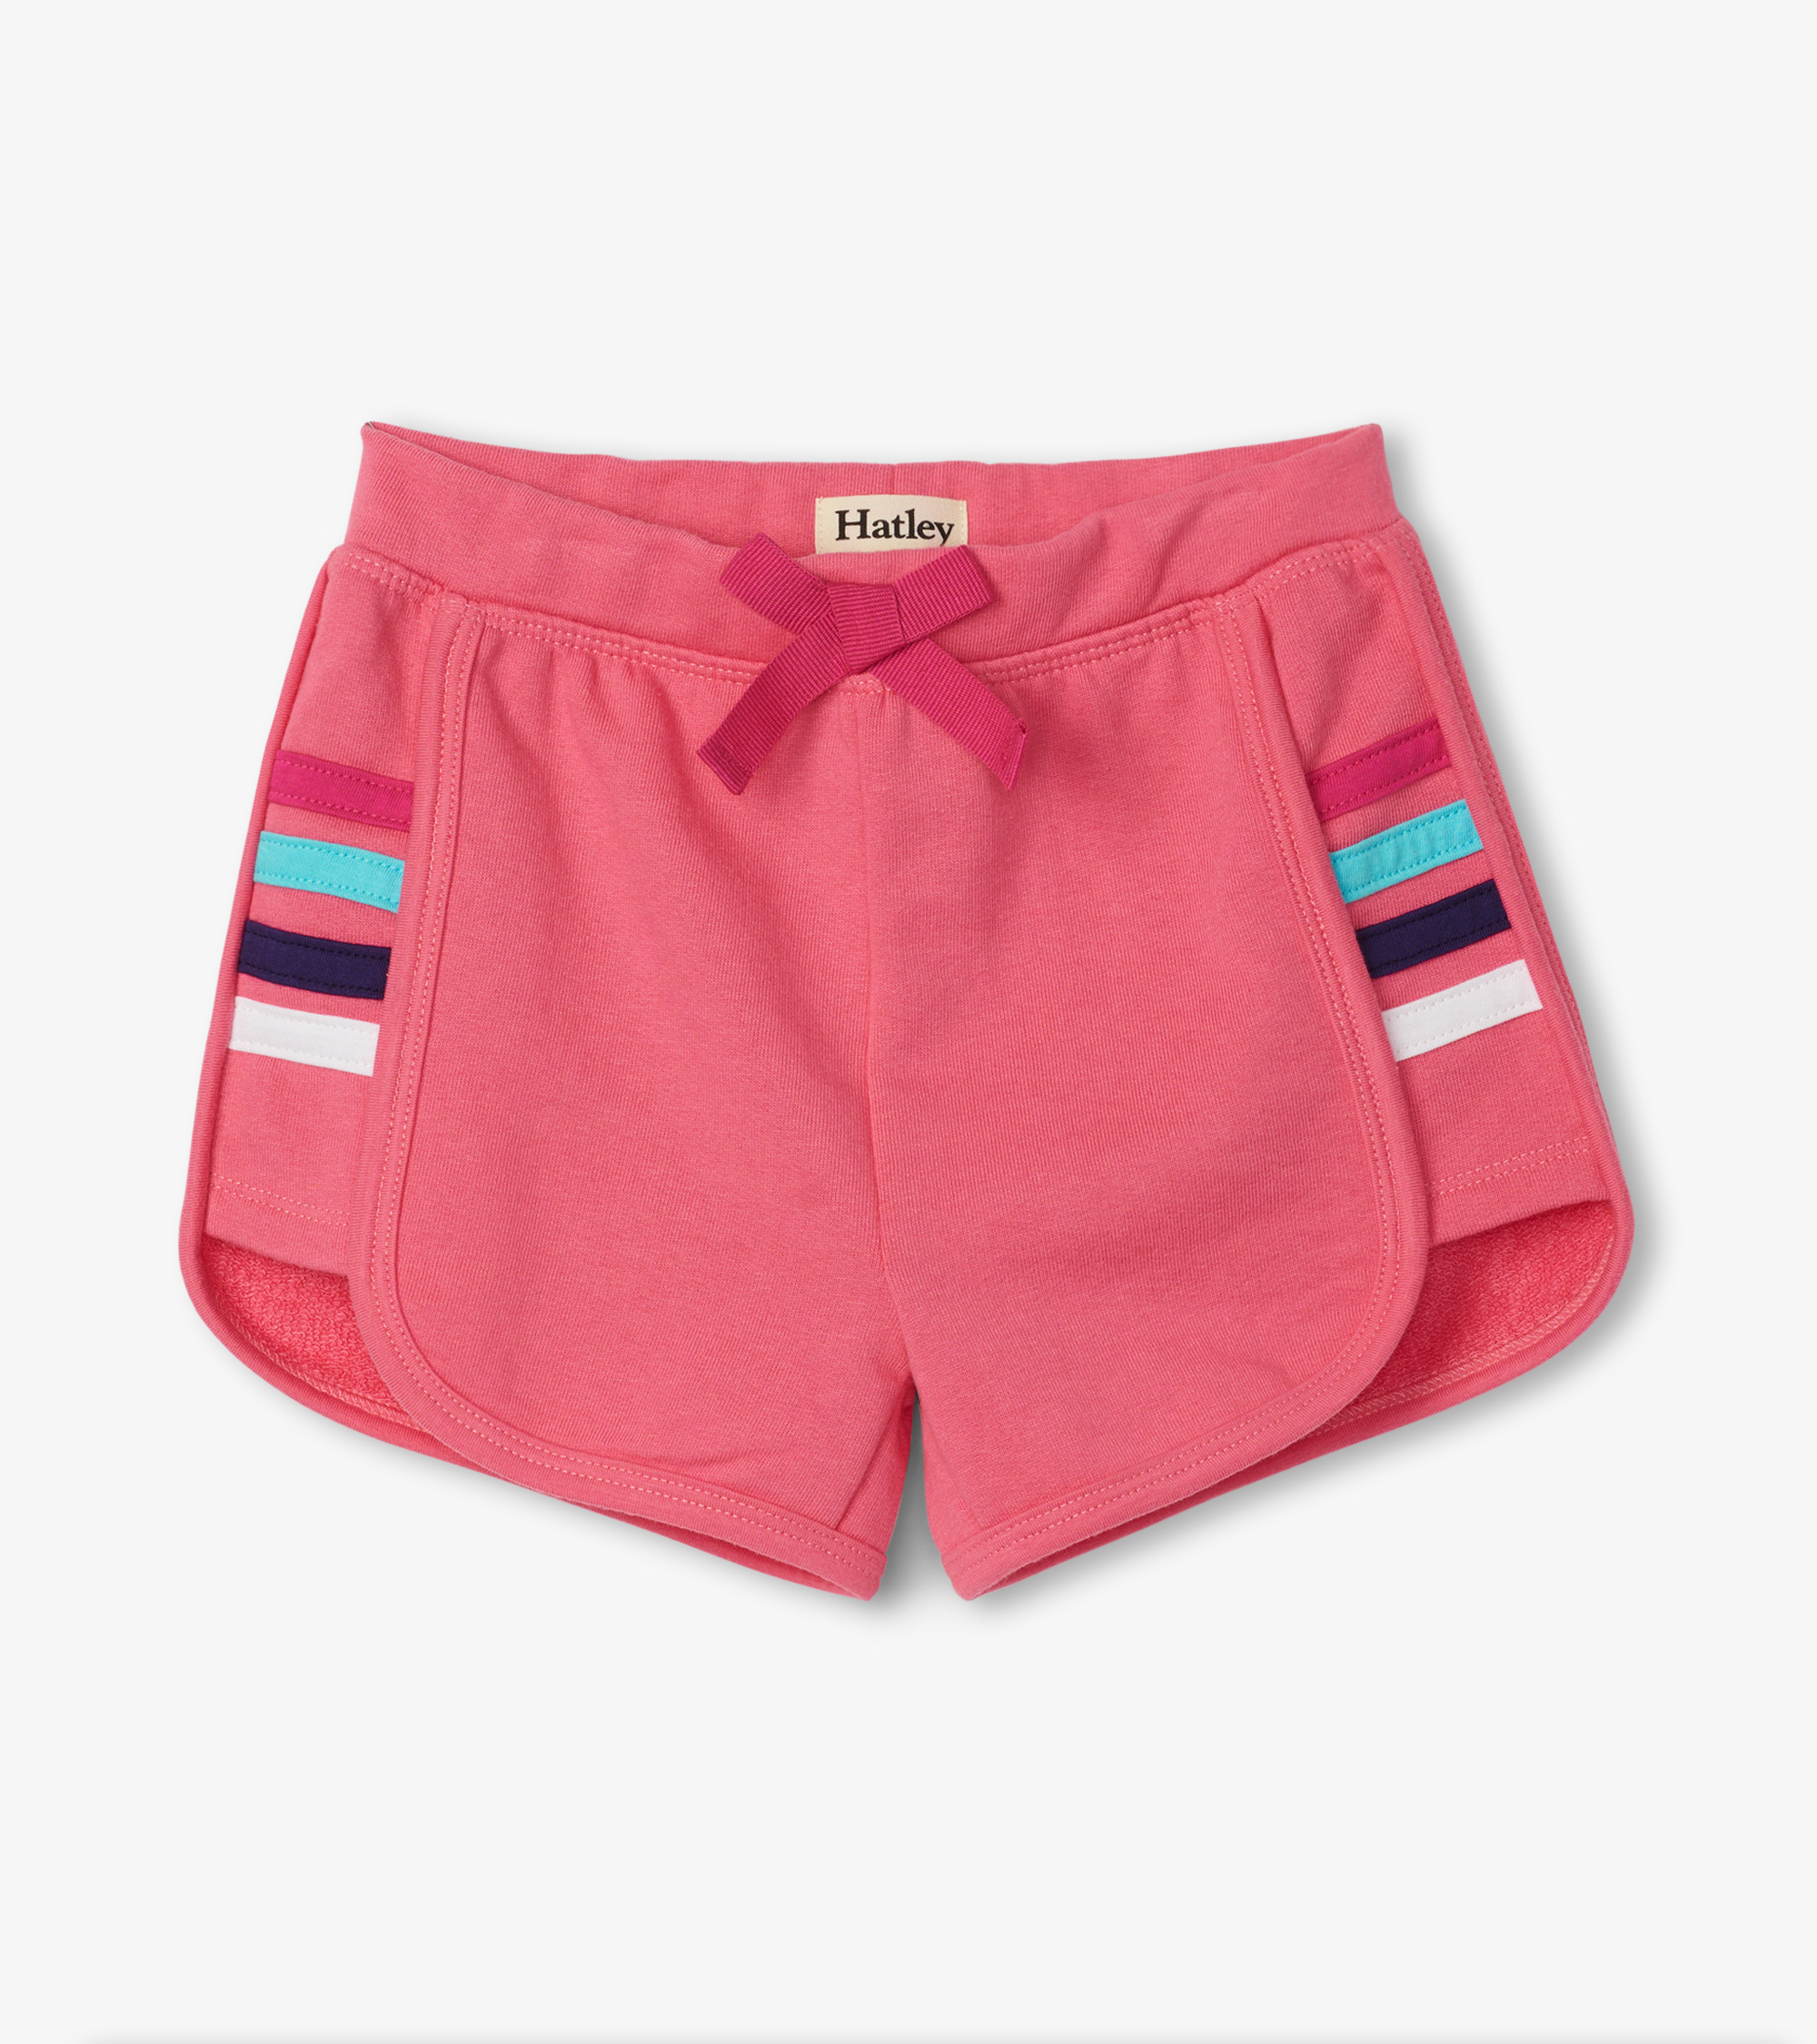 NOW £10.40 Hatley Retro Rainbow Shorts